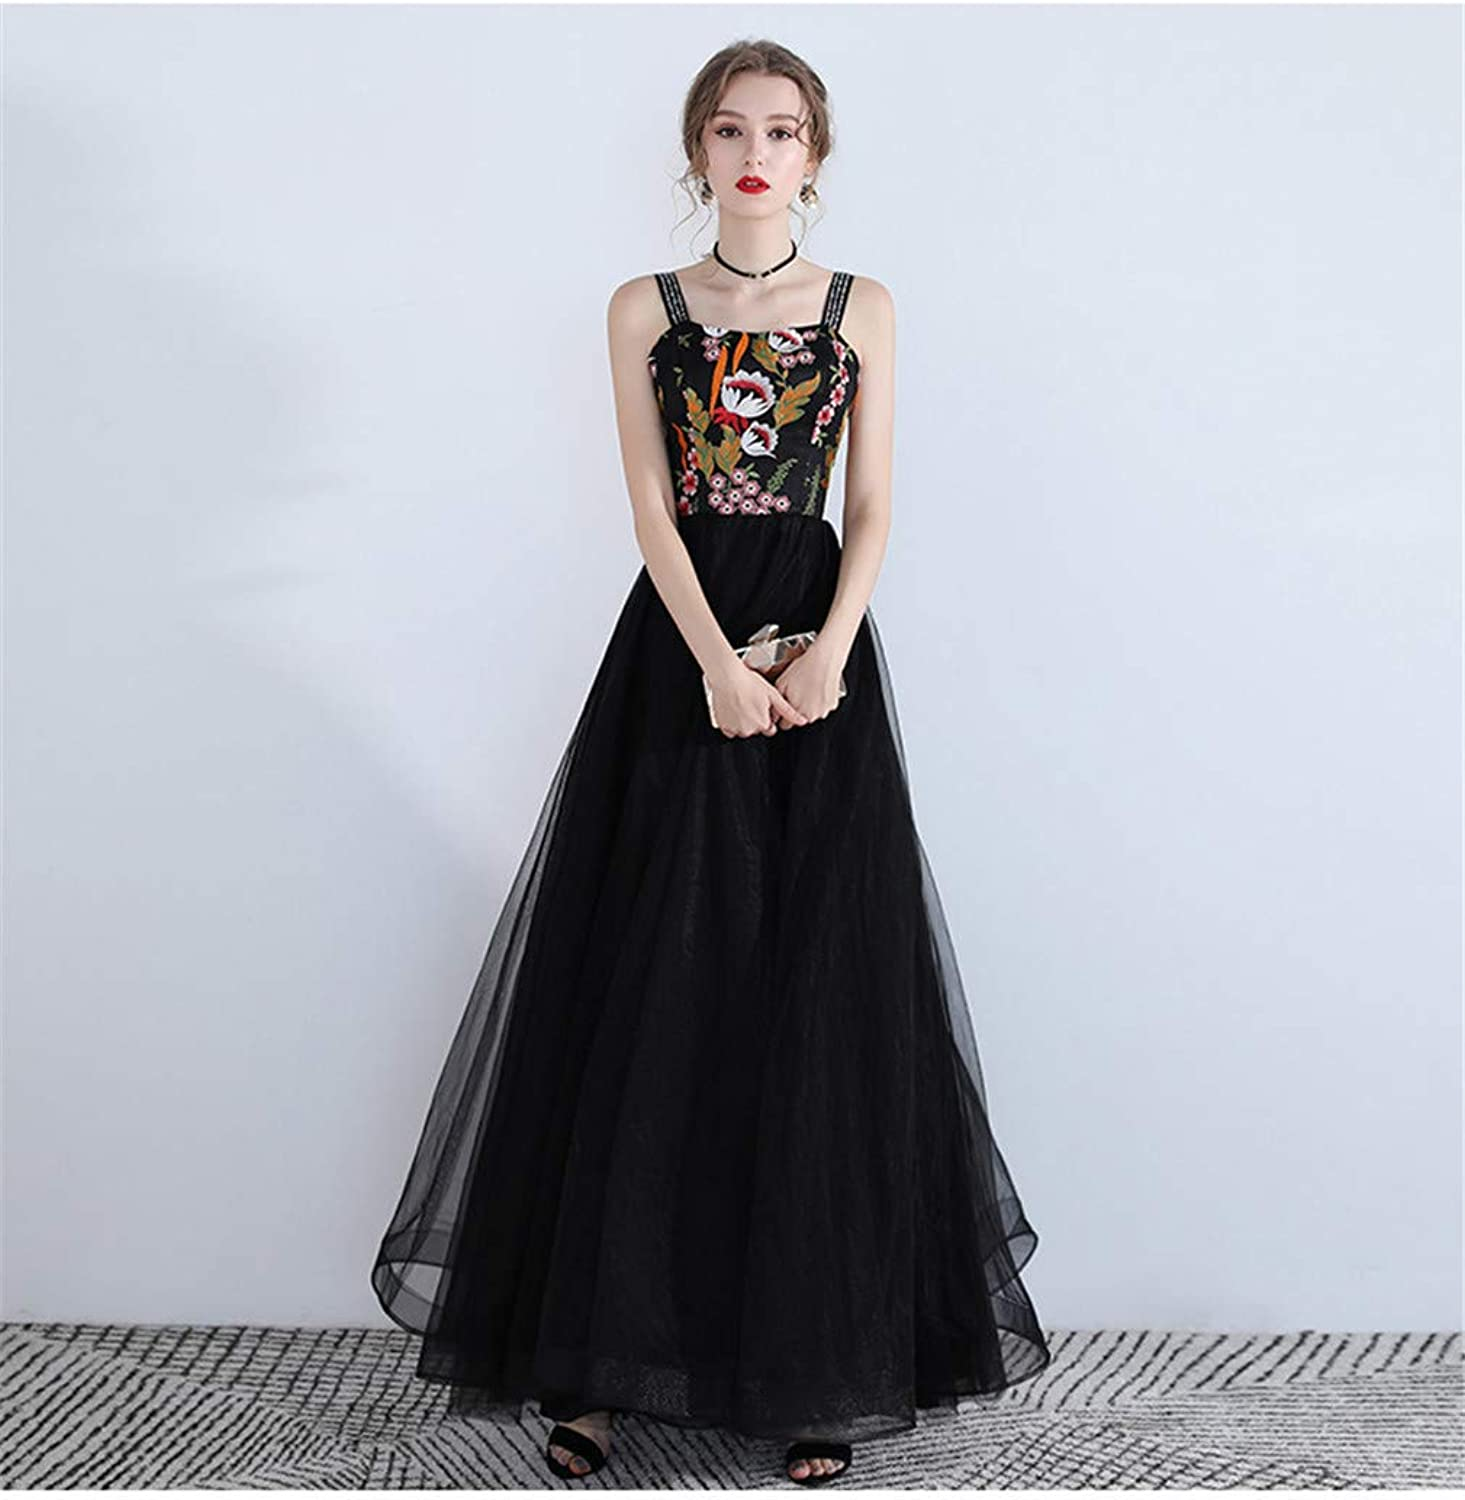 Black Evening Dress, Women Sexy Long Formal Gowns Shoulder Strap Prom Sling Skirt Wedding Outdoor Activities